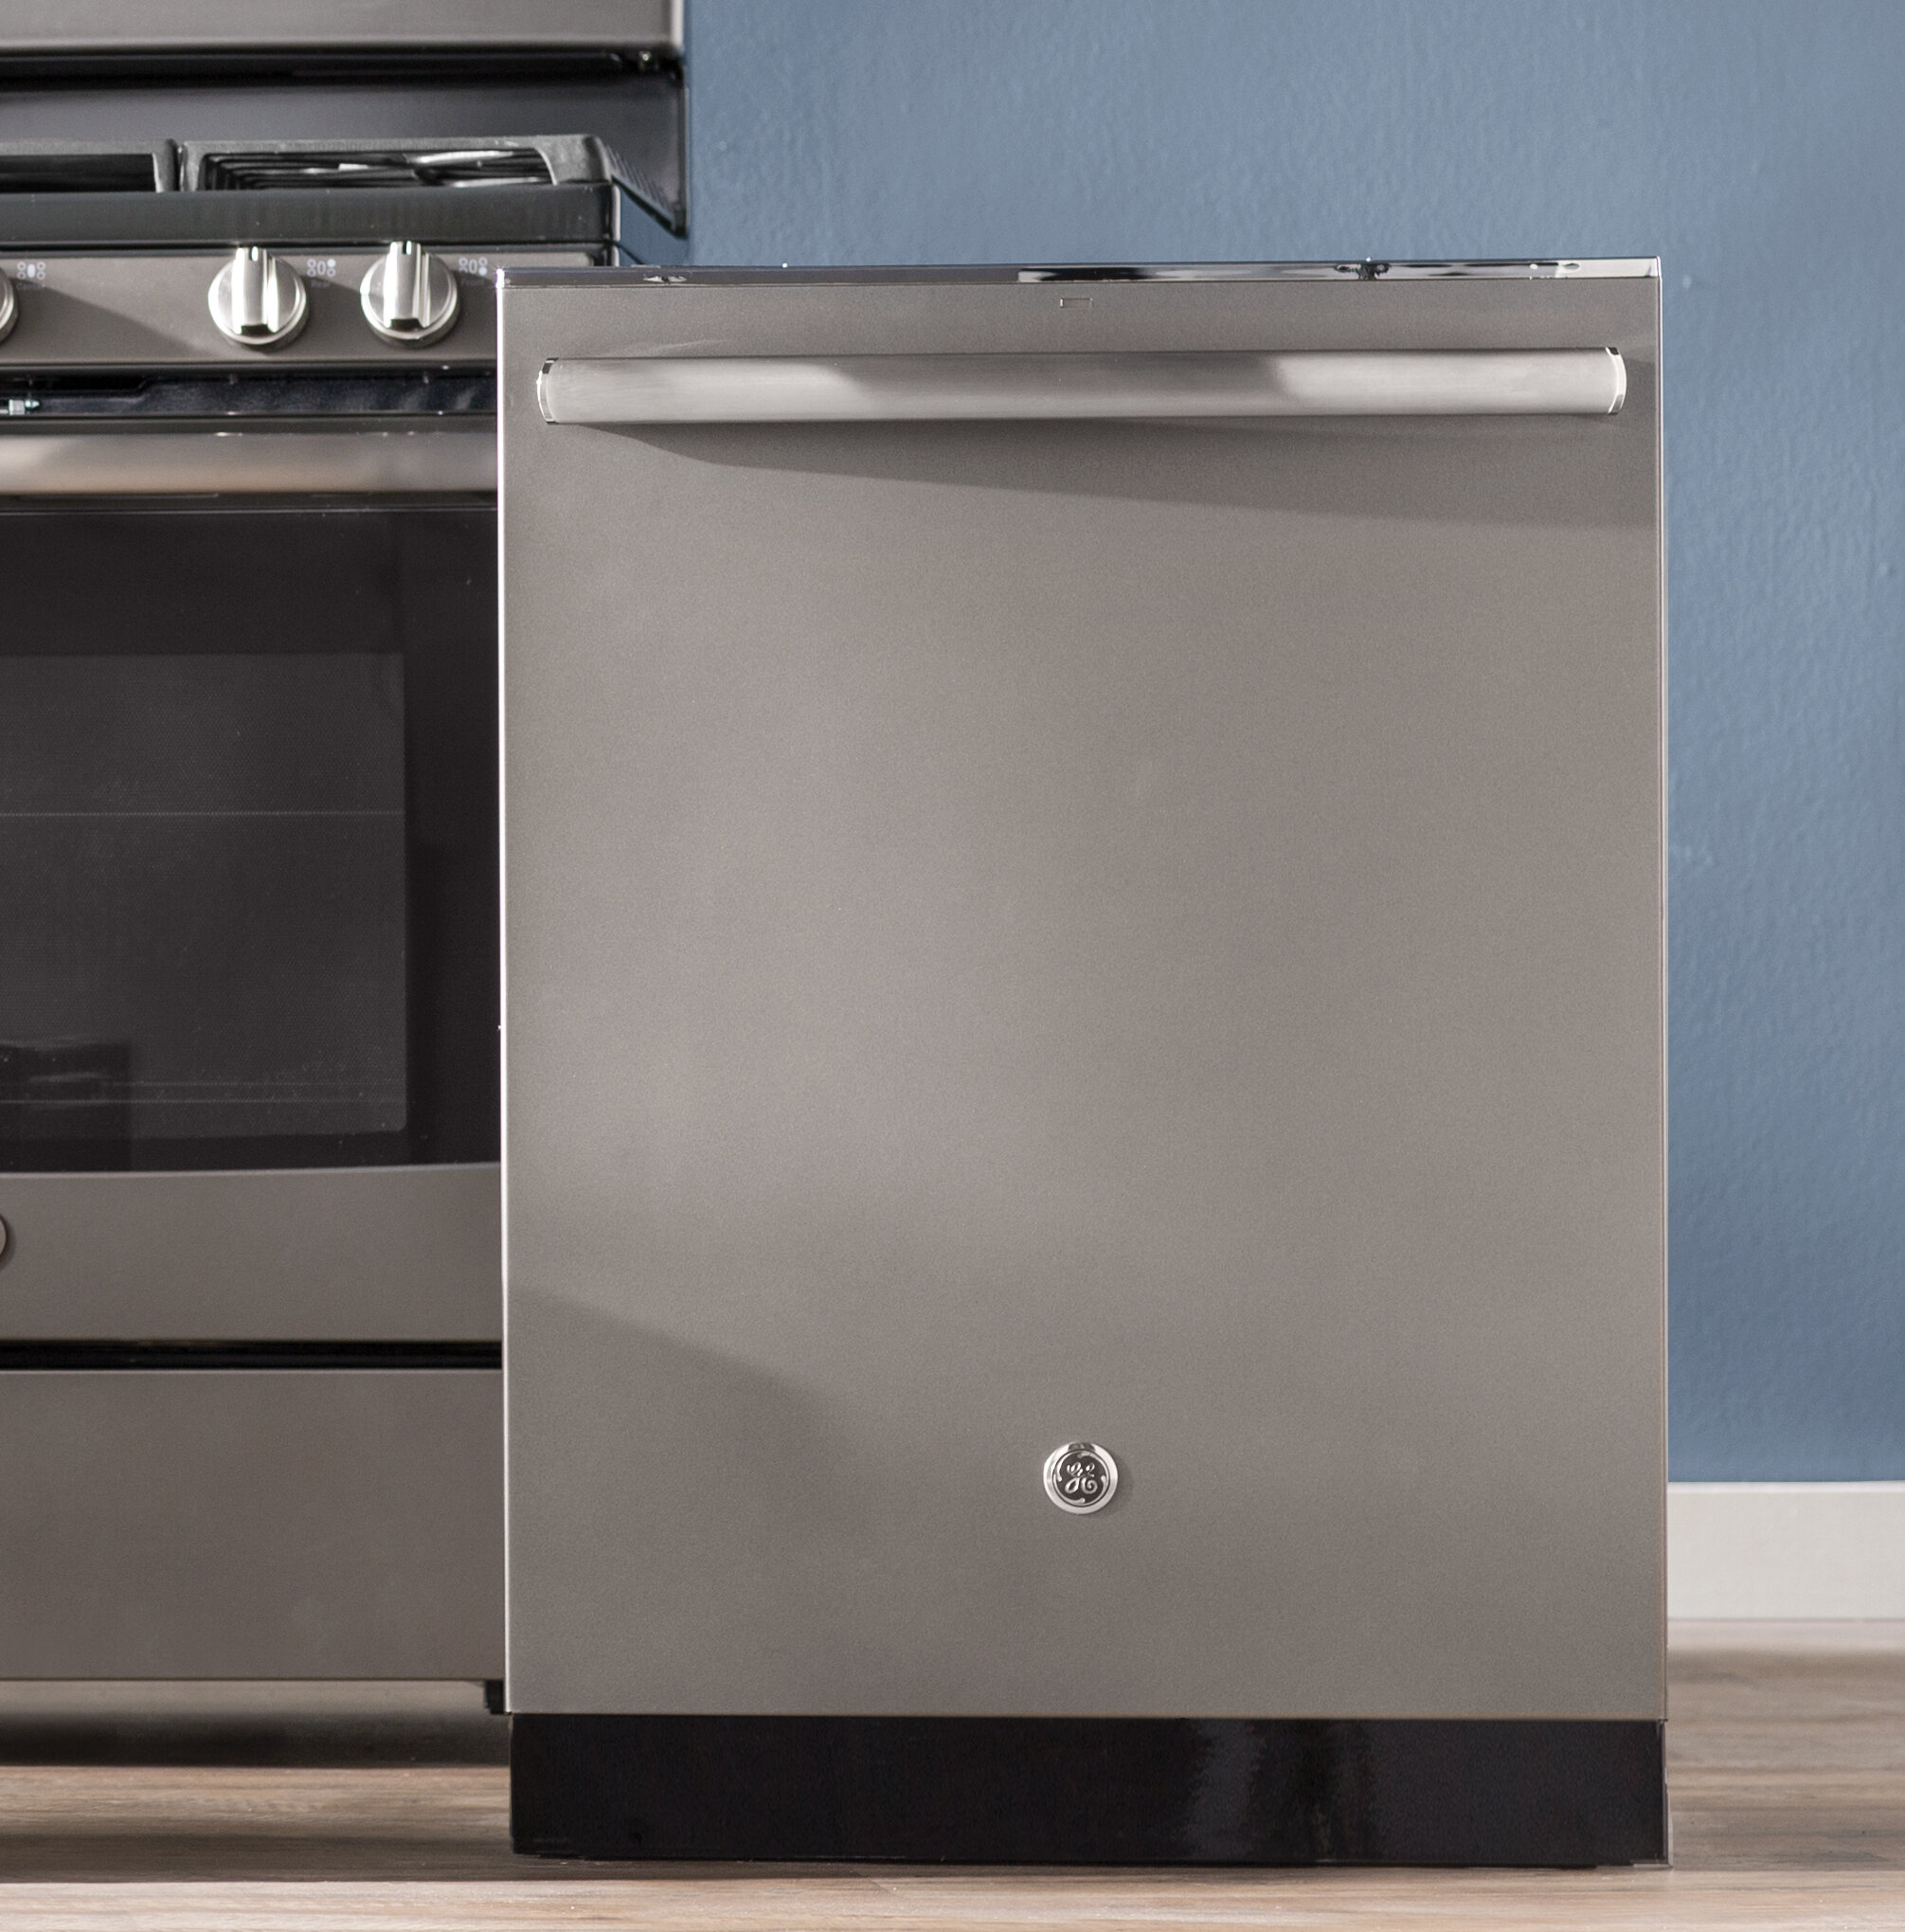 Built-in dishwasher: comfort and practicality